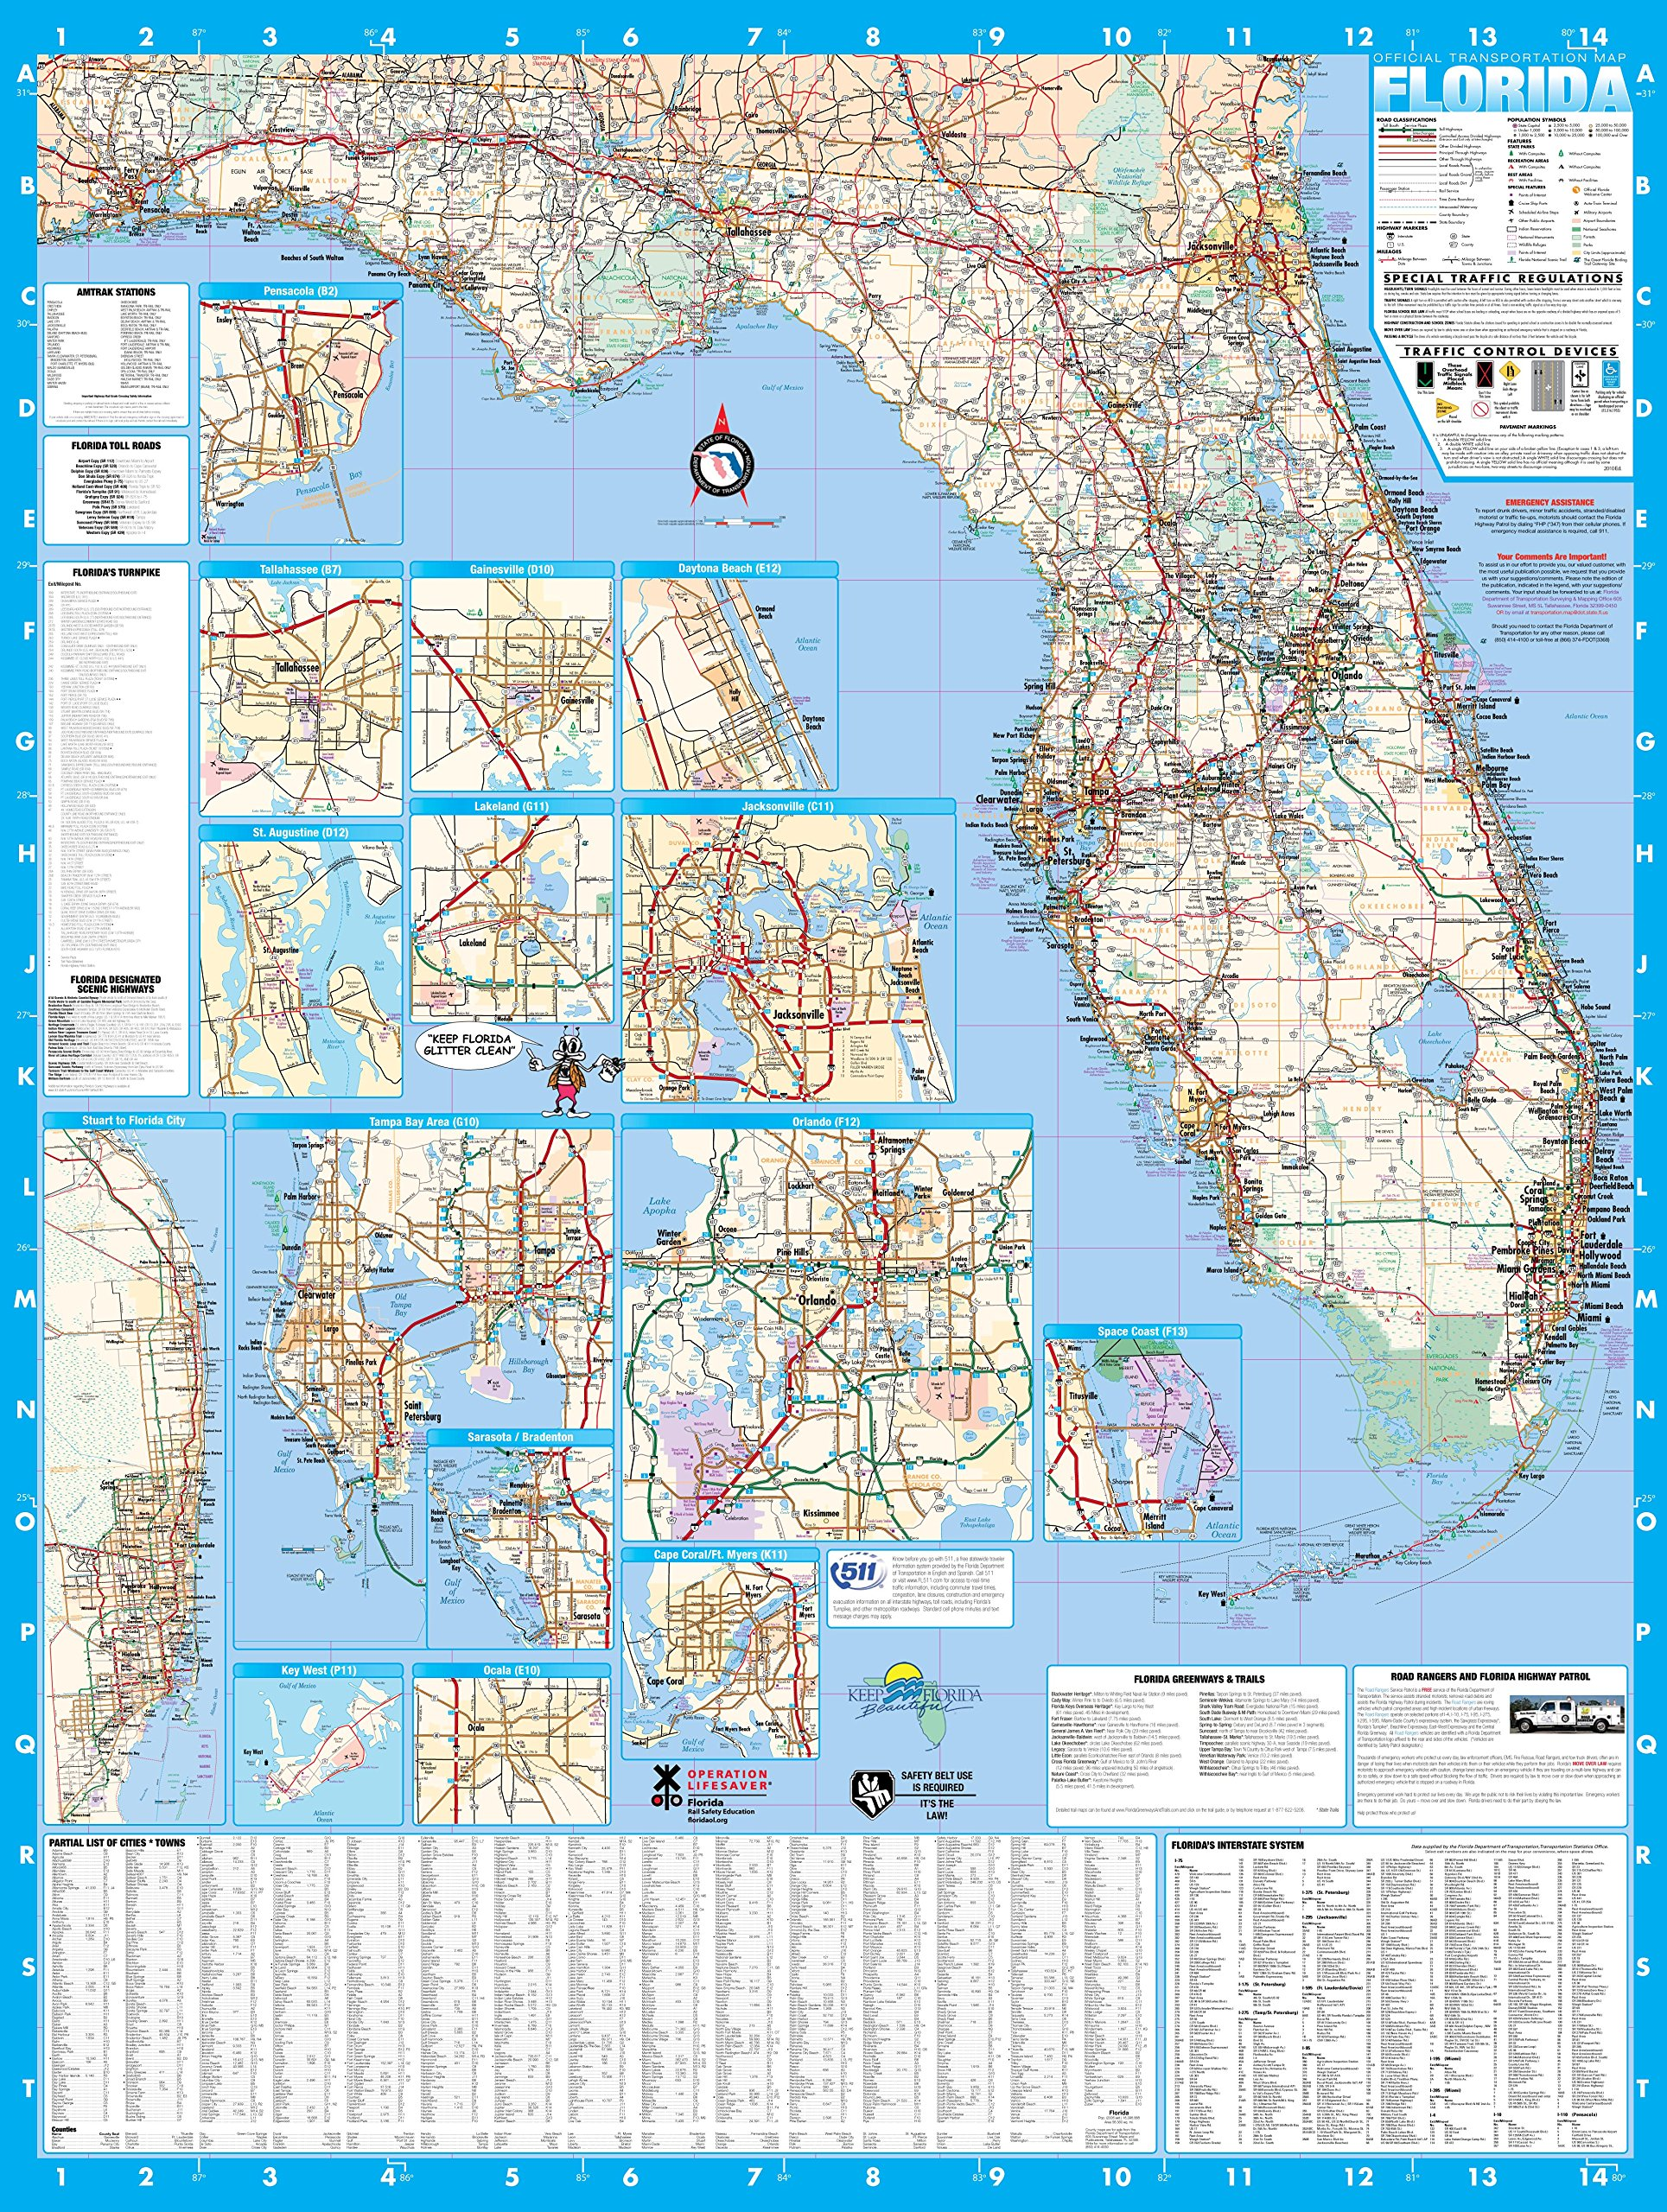 Florida State Laminated Wall Map Poster 36x48 by Swiftmaps